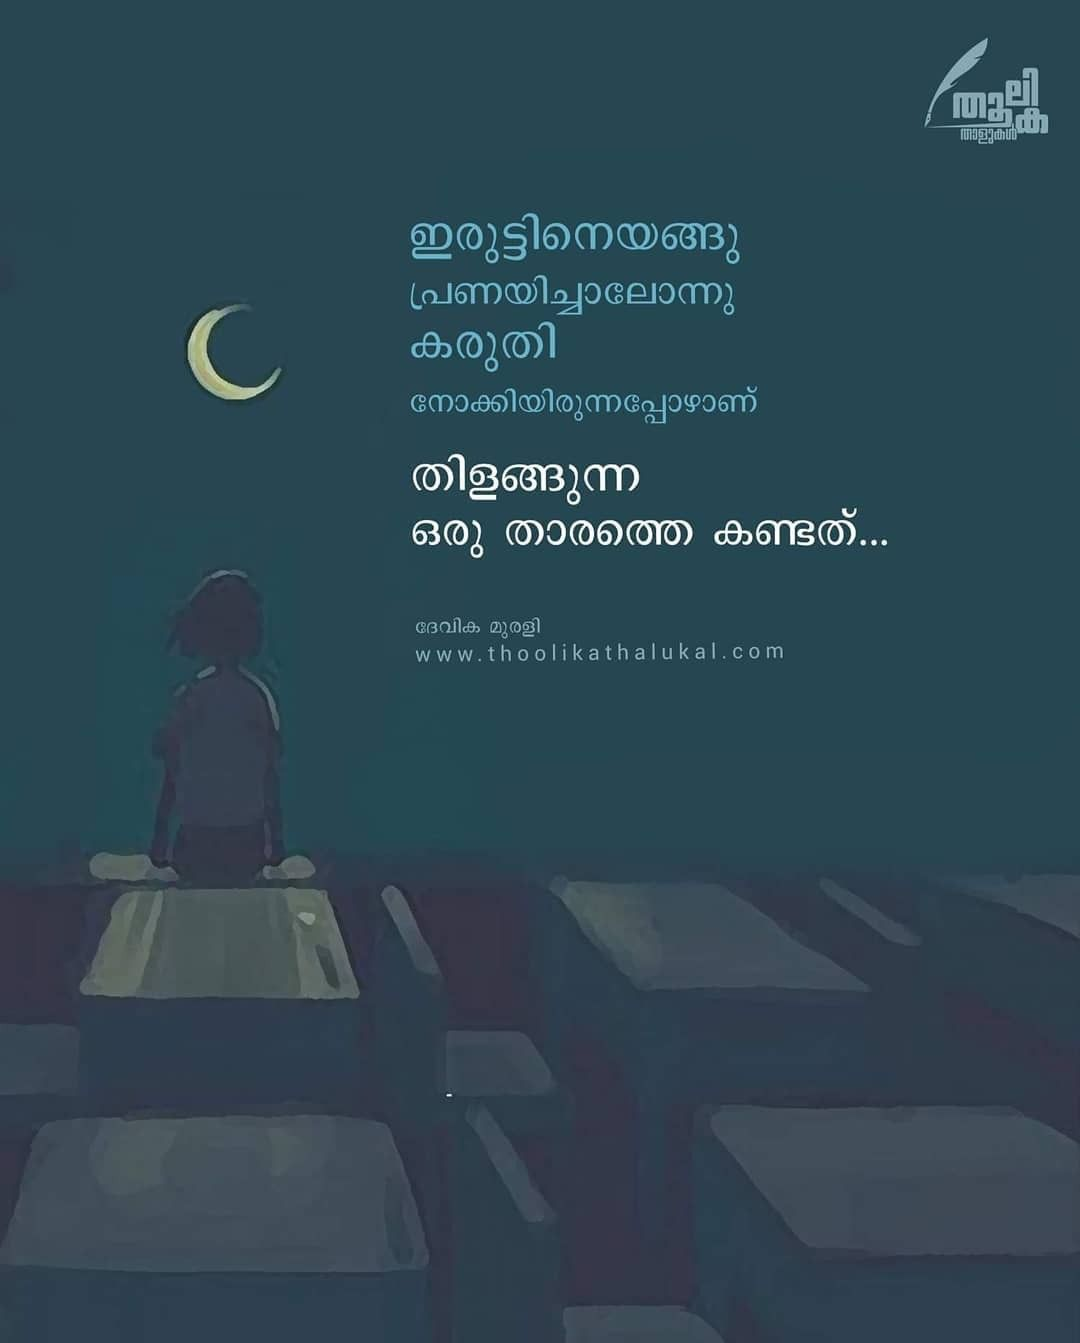 Pinne onnum nokkiyilla | മലയാളം quotz | Pinterest | Thoughts ...